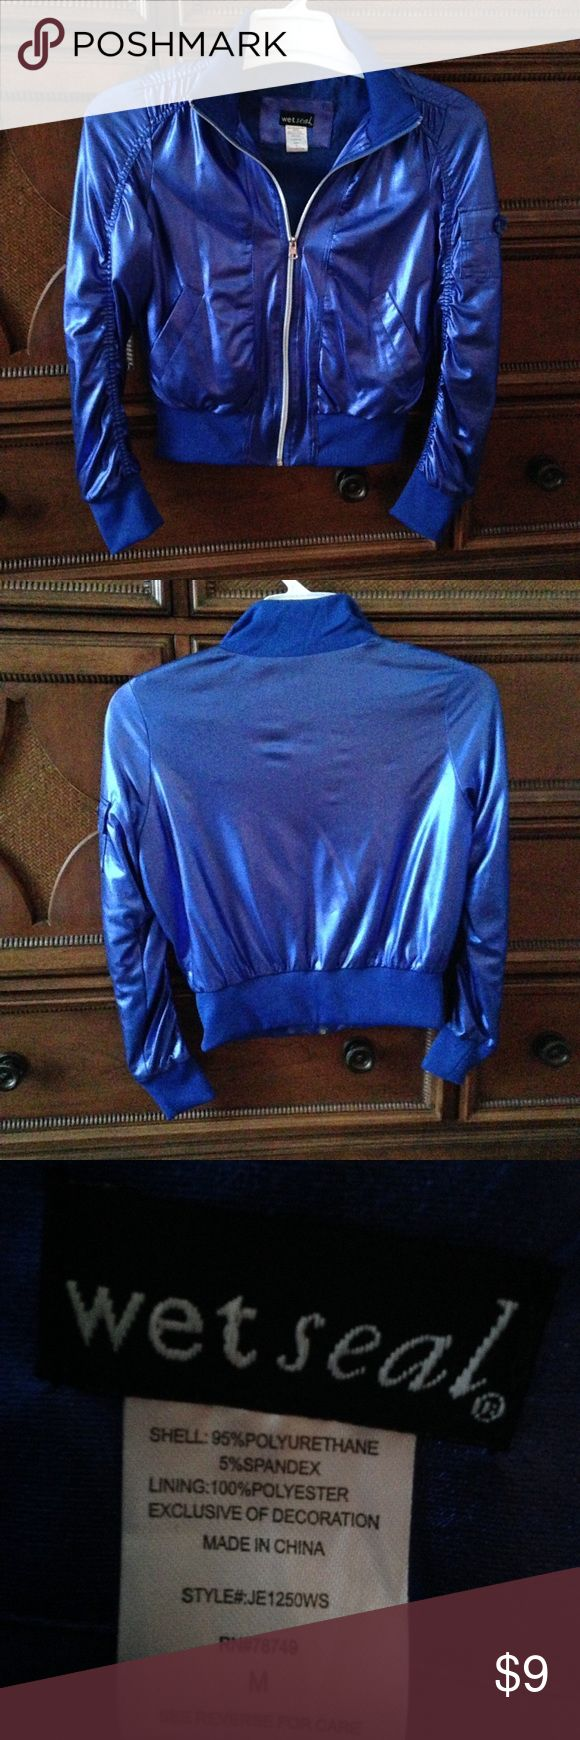 Electric Blue Metallic Zip Up Jacket SWEET statement jacket. Very soft silky feeling and oh that shine!!!!! Cinched seams, left pocket on the upper sleeve and front pockets add extra flair.  Brand is Wet Seal. Shell is 95% polyurethane 5% spandex and lining is 100% polyester. Size is medium but it can still look nice on a size small, too. All prices negotiable-and great bundle options just ask. Make an offer! Wet Seal Jackets & Coats